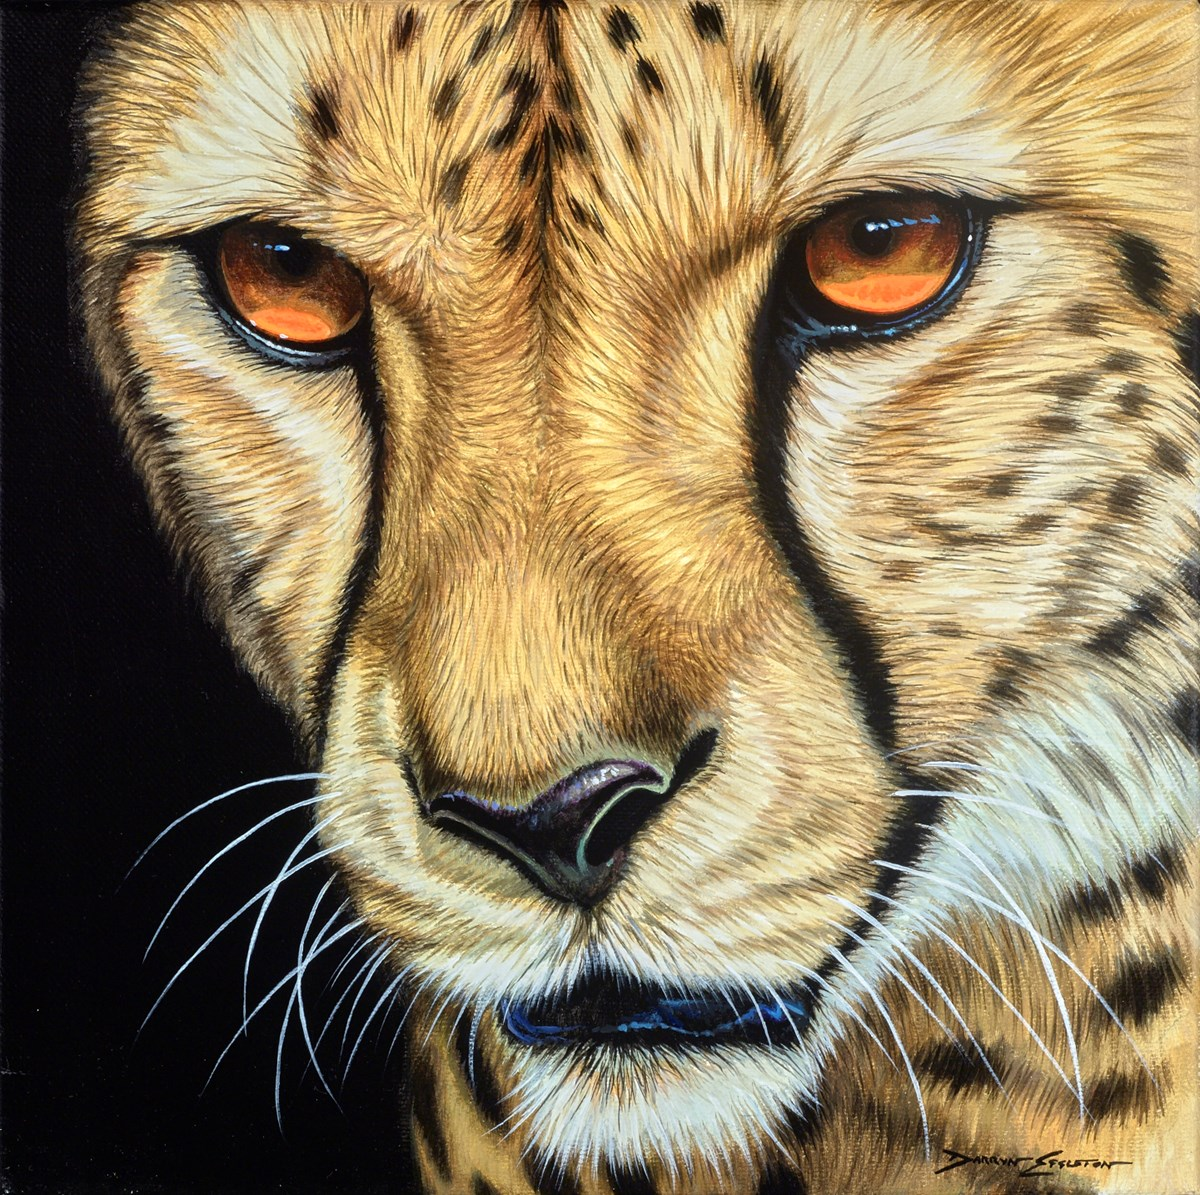 Amber Eyes by darryn eggleton -  sized 12x12 inches. Available from Whitewall Galleries